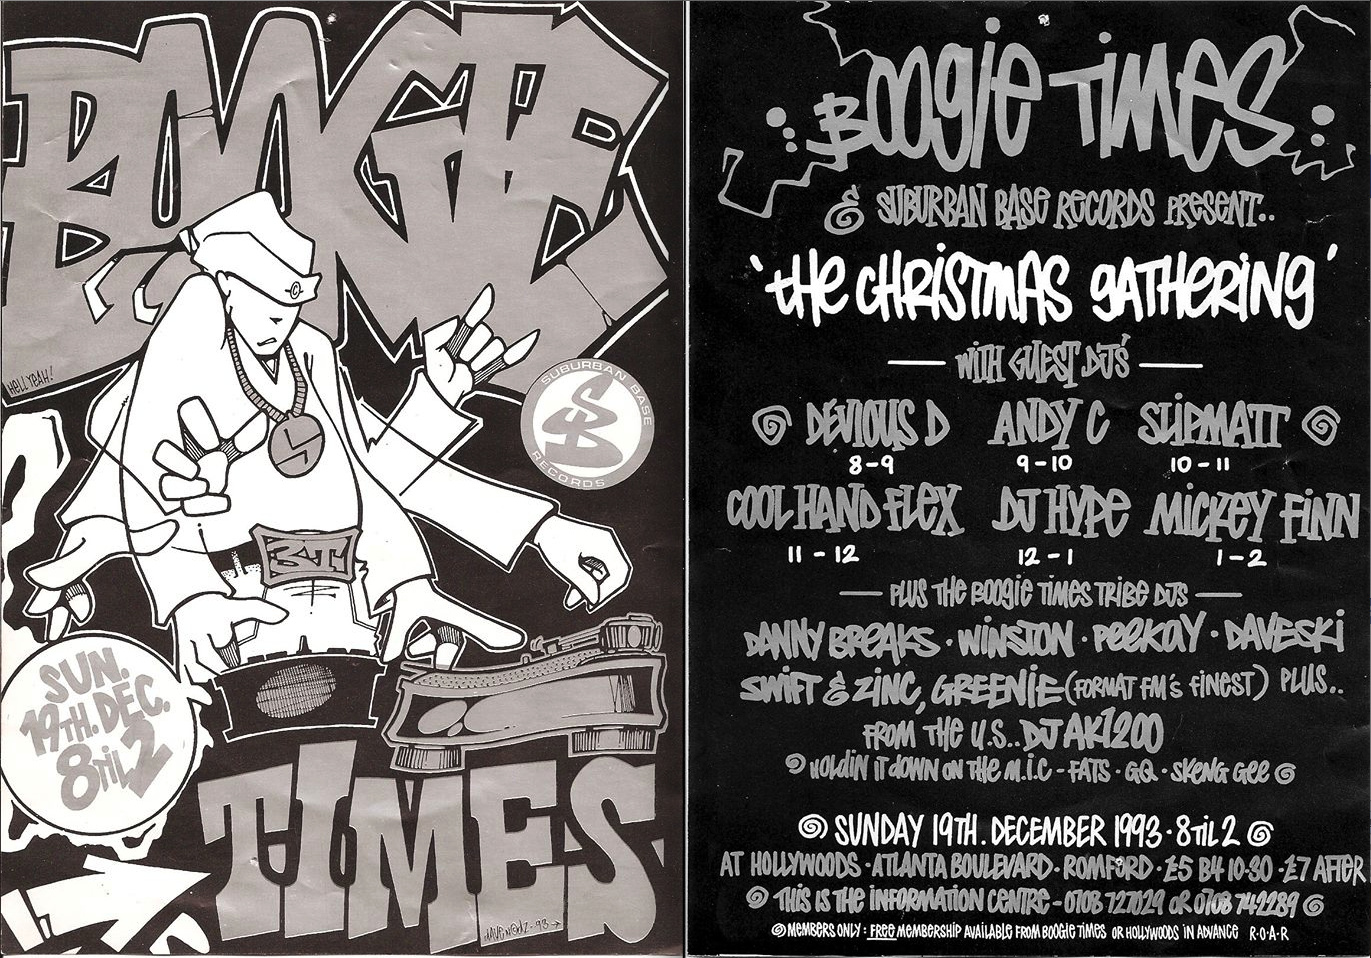 boogie times flyer